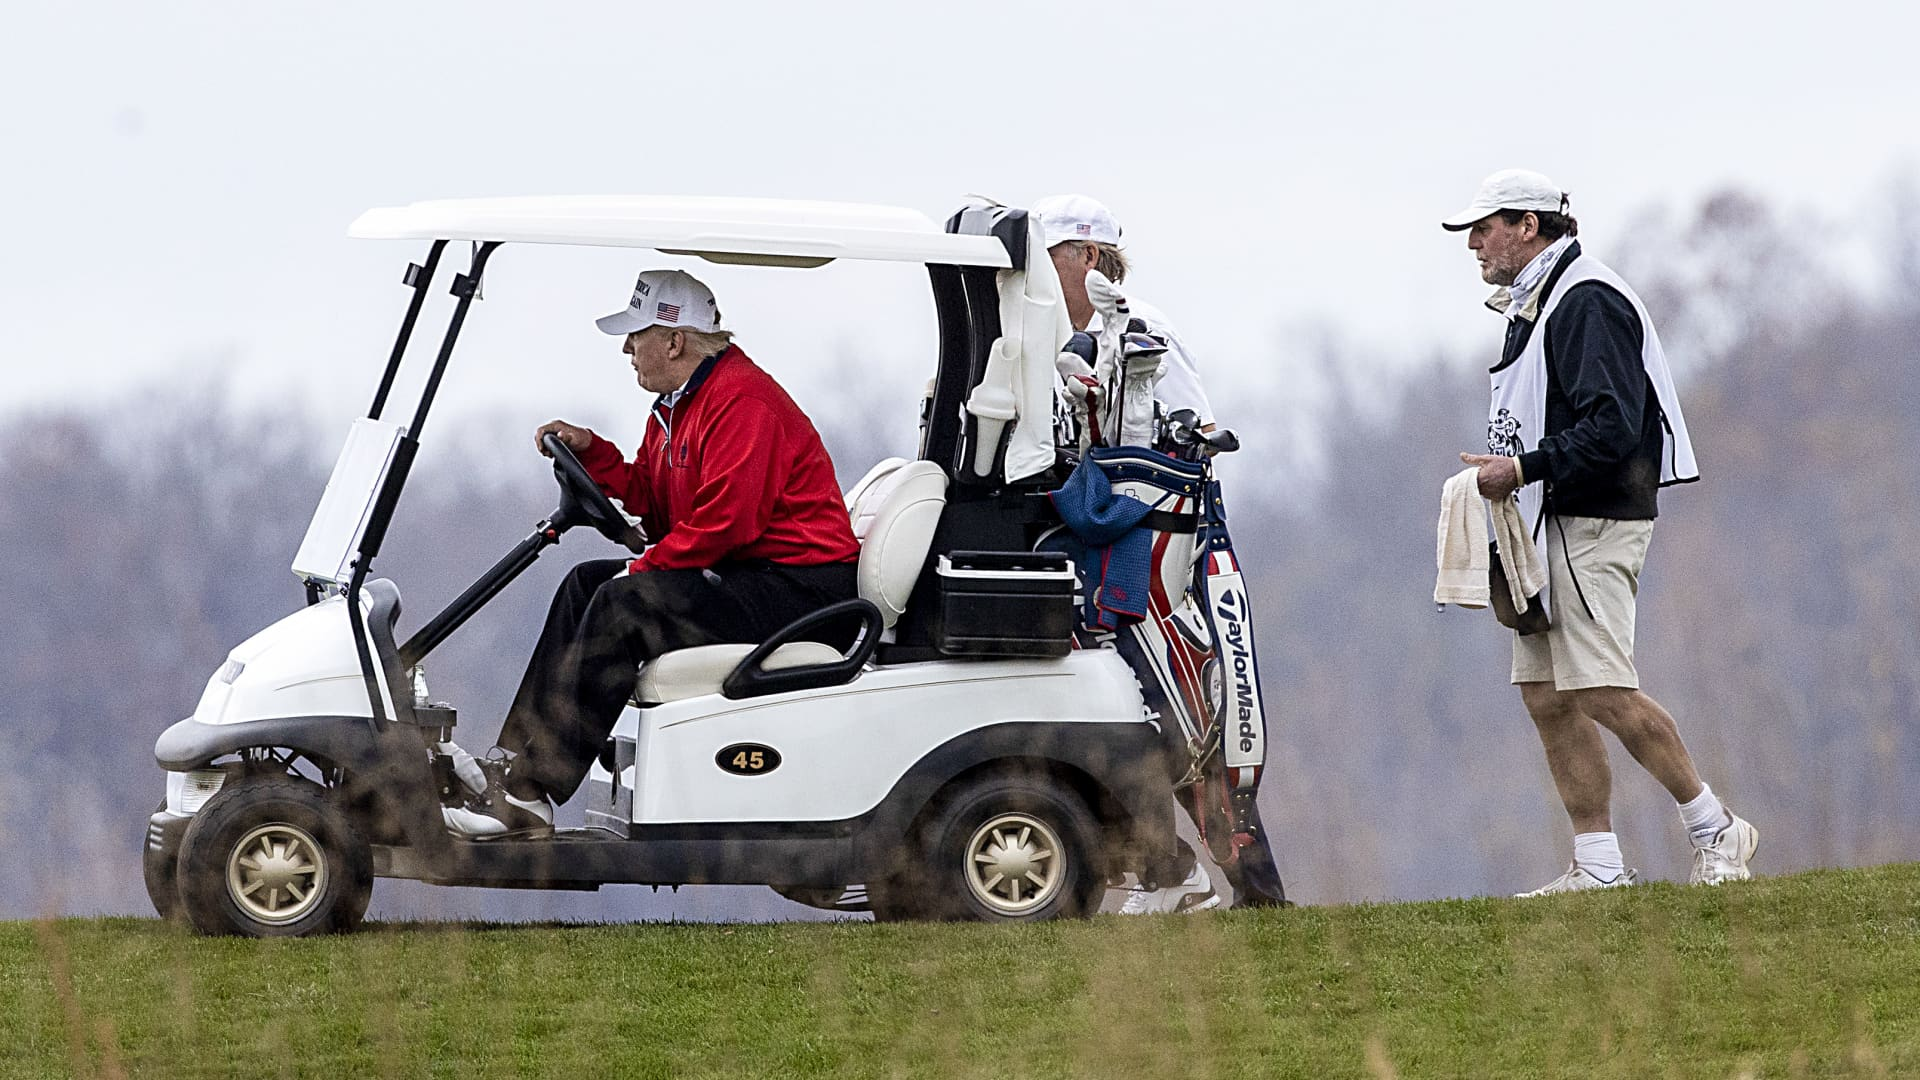 President Donald Trump golfs at Trump National Golf Club on November 21, 2020 in Sterling, Virginia.